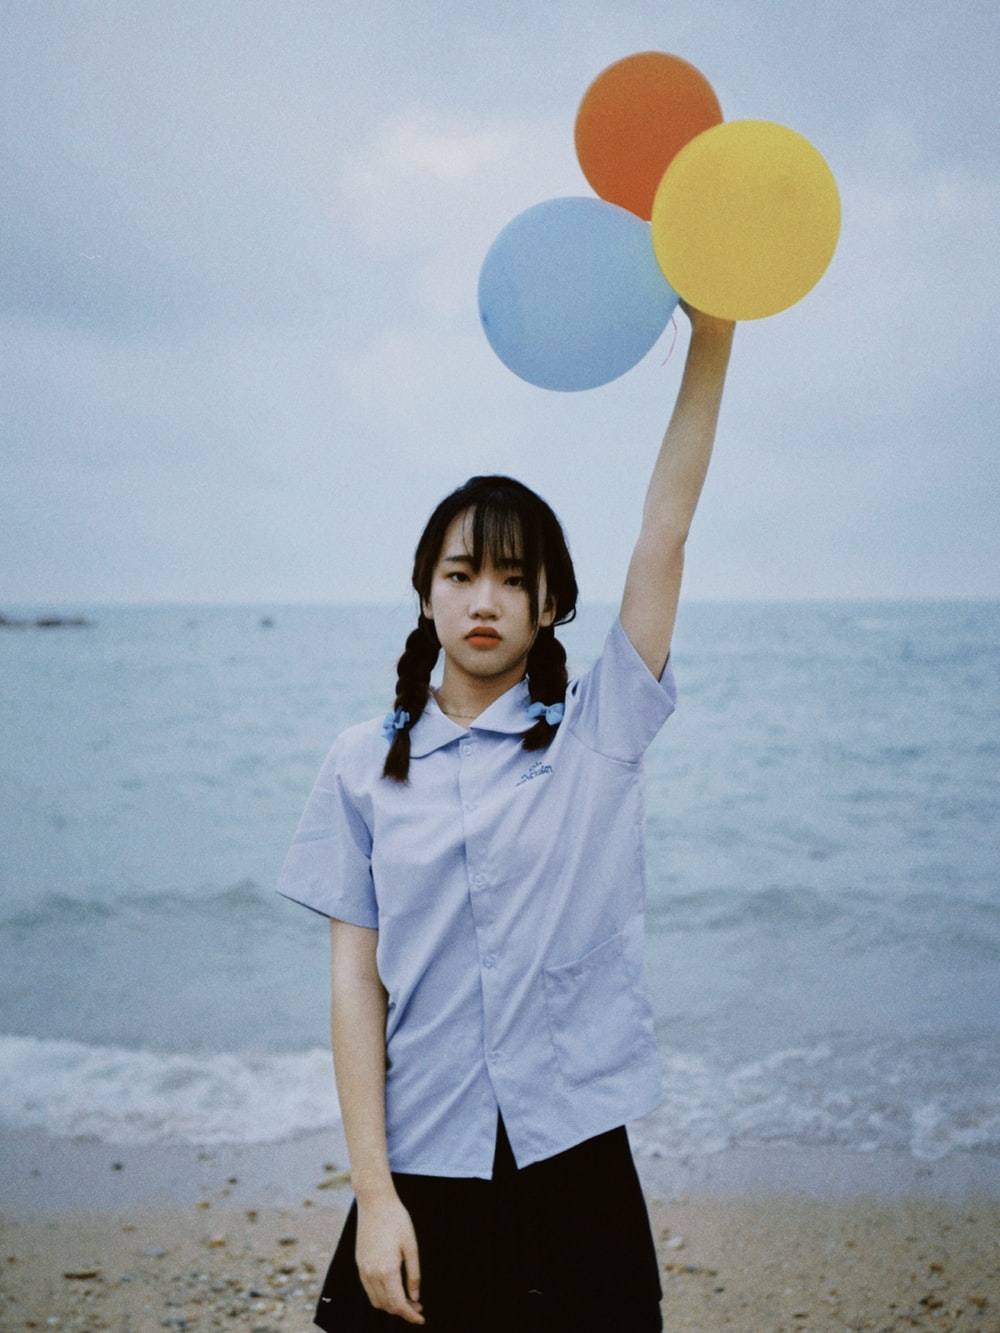 woman in white button up shirt holding blue and white balloons